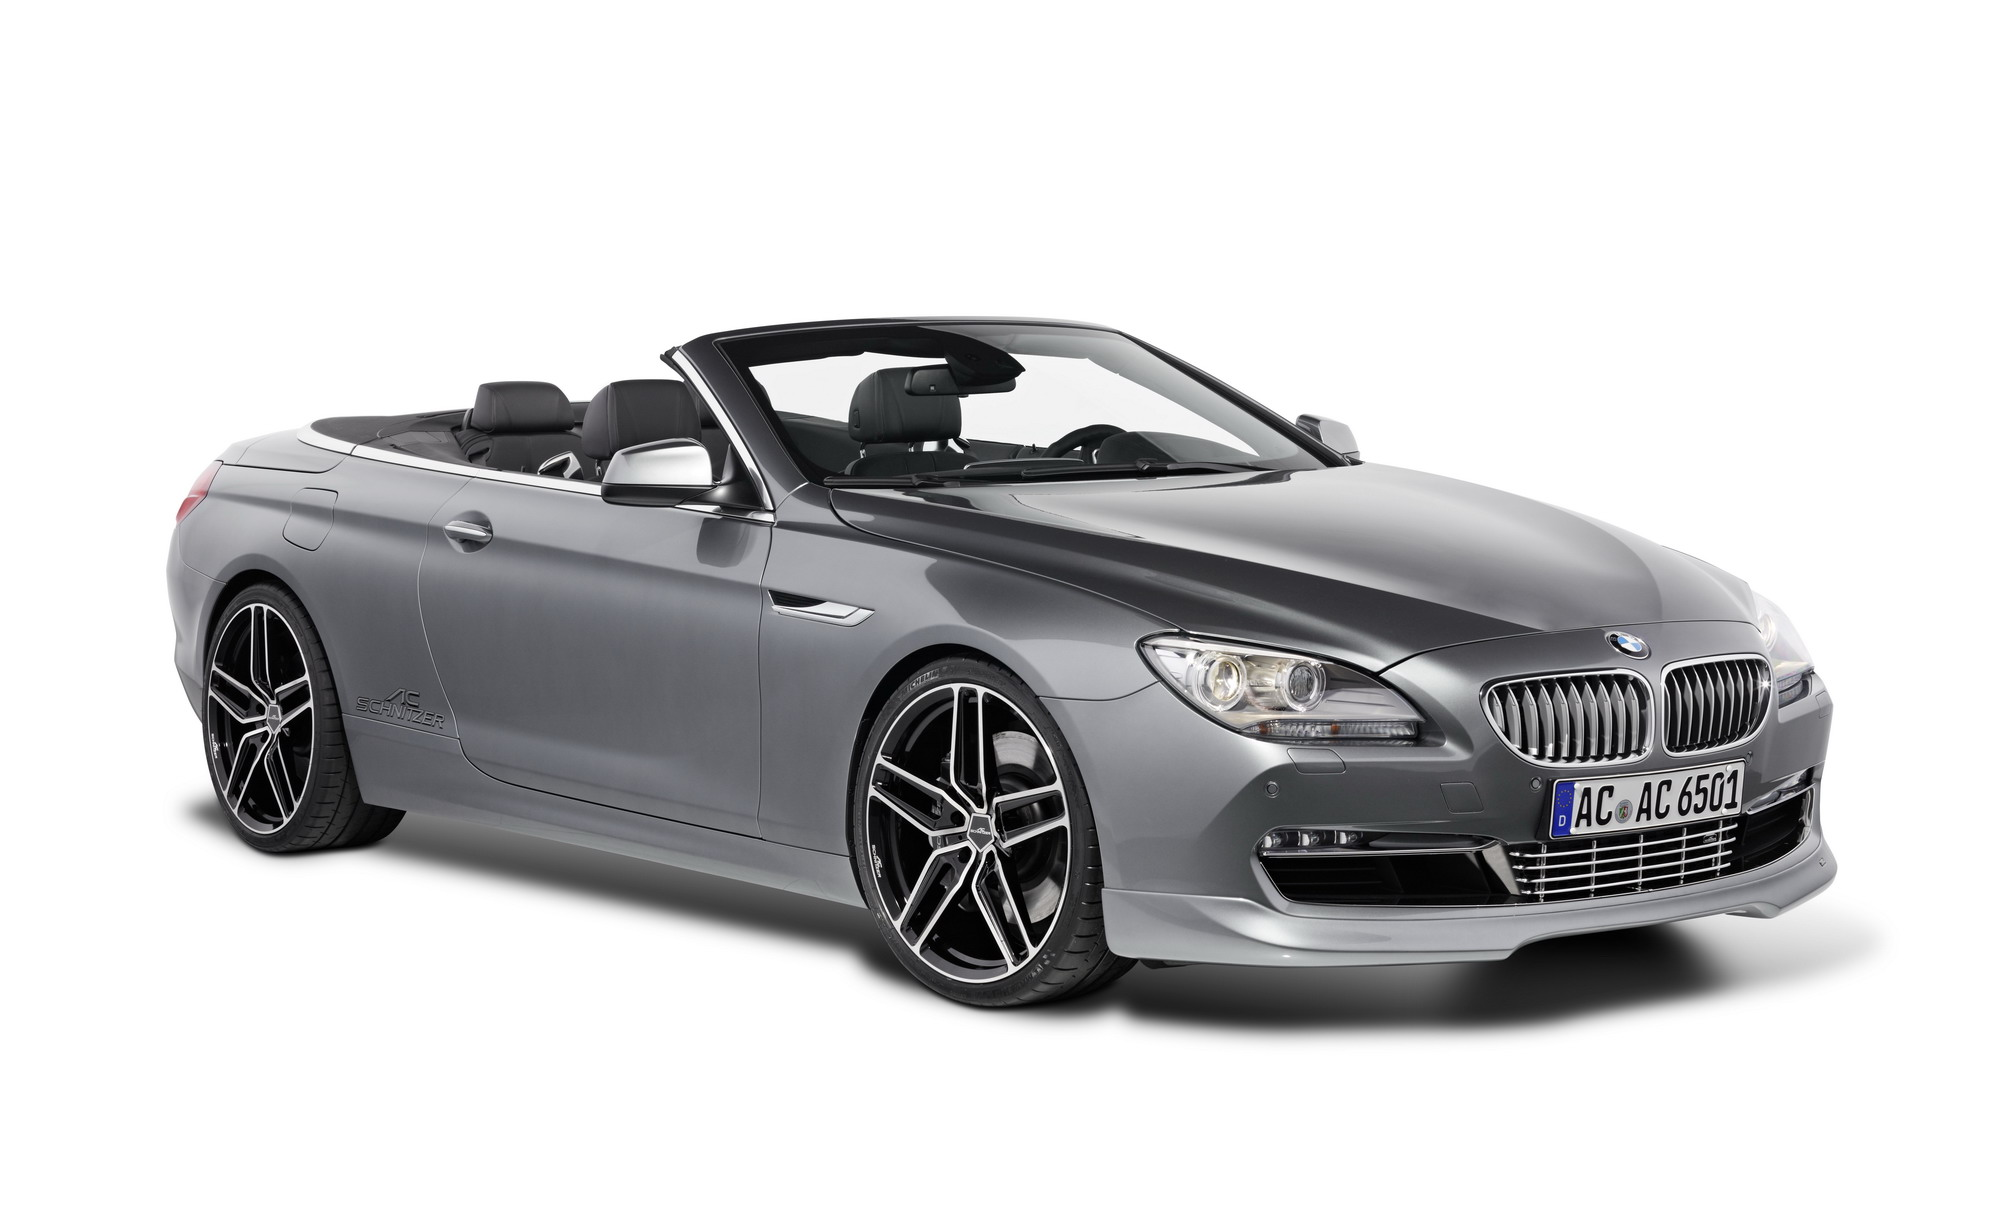 2012 bmw 650i convertible by ac schnitzer review top speed. Black Bedroom Furniture Sets. Home Design Ideas